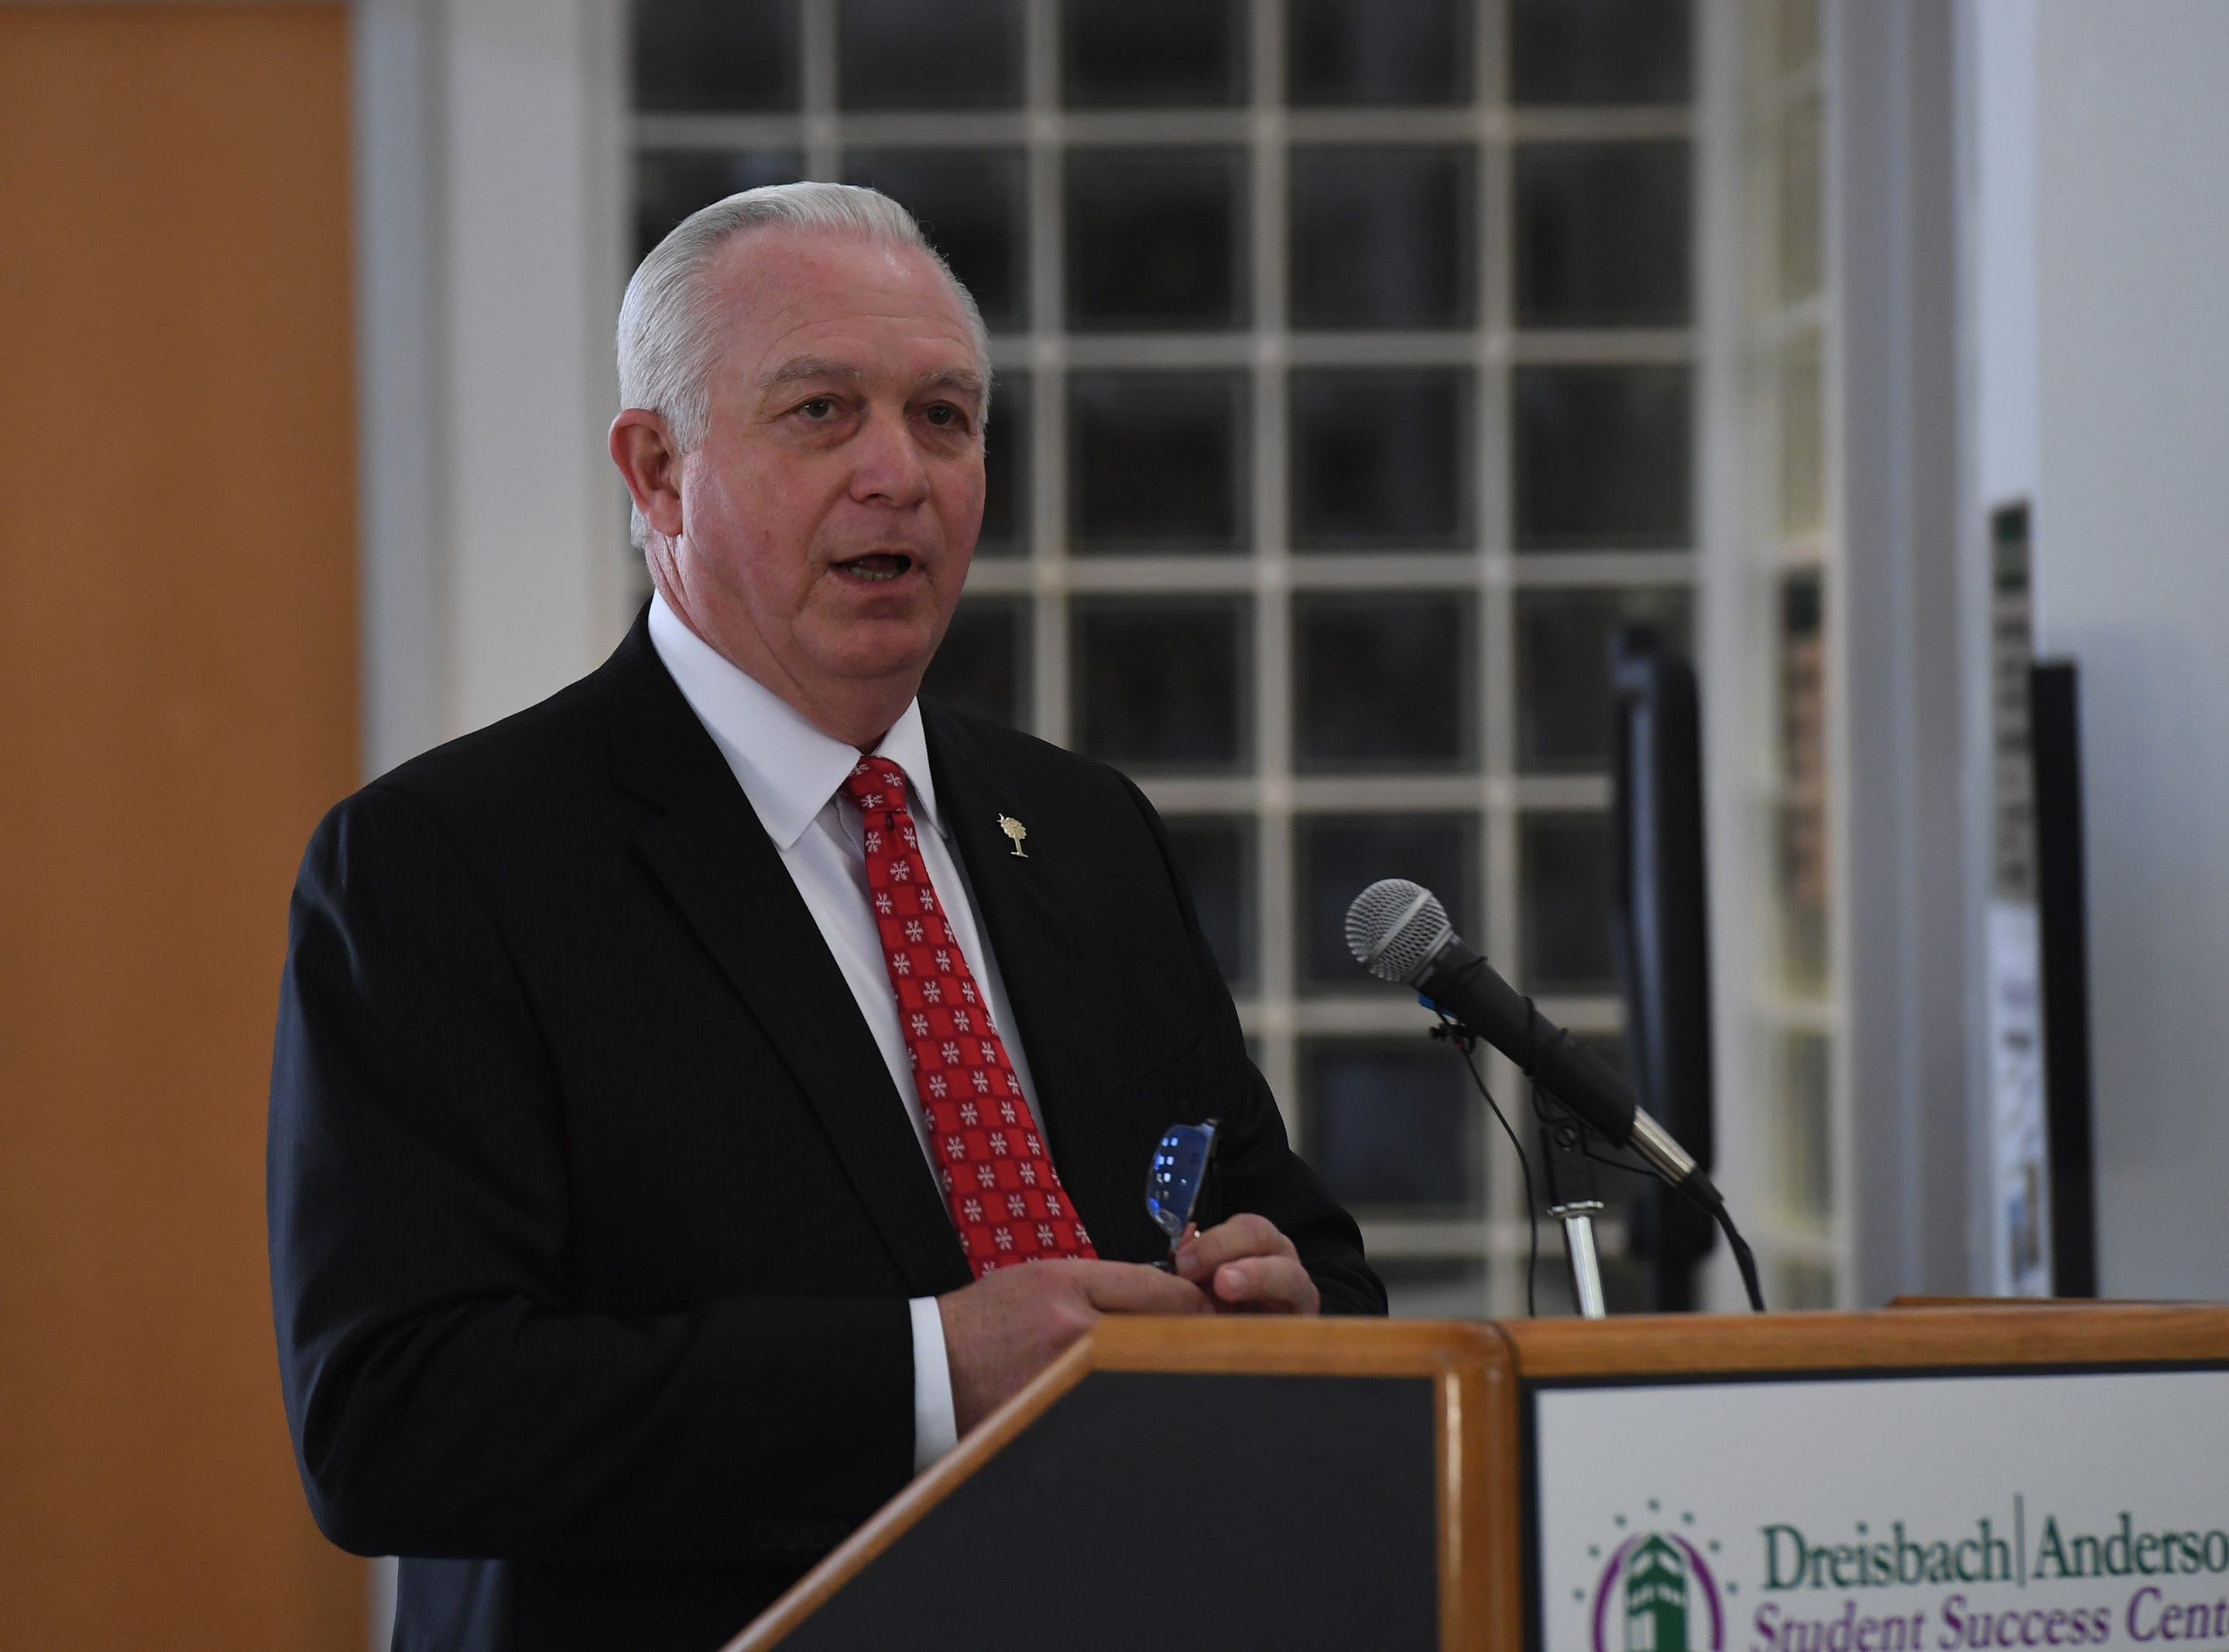 Dr. Keith Miller, president of Greenville Technical College, talks during an event celebrating a $2 million donation at Greenville Technical College Wednesday, Nov. 28, 2018. Dodie Anderson donated the money which will be used for The Dreisbach/Anderson Student Success Center.